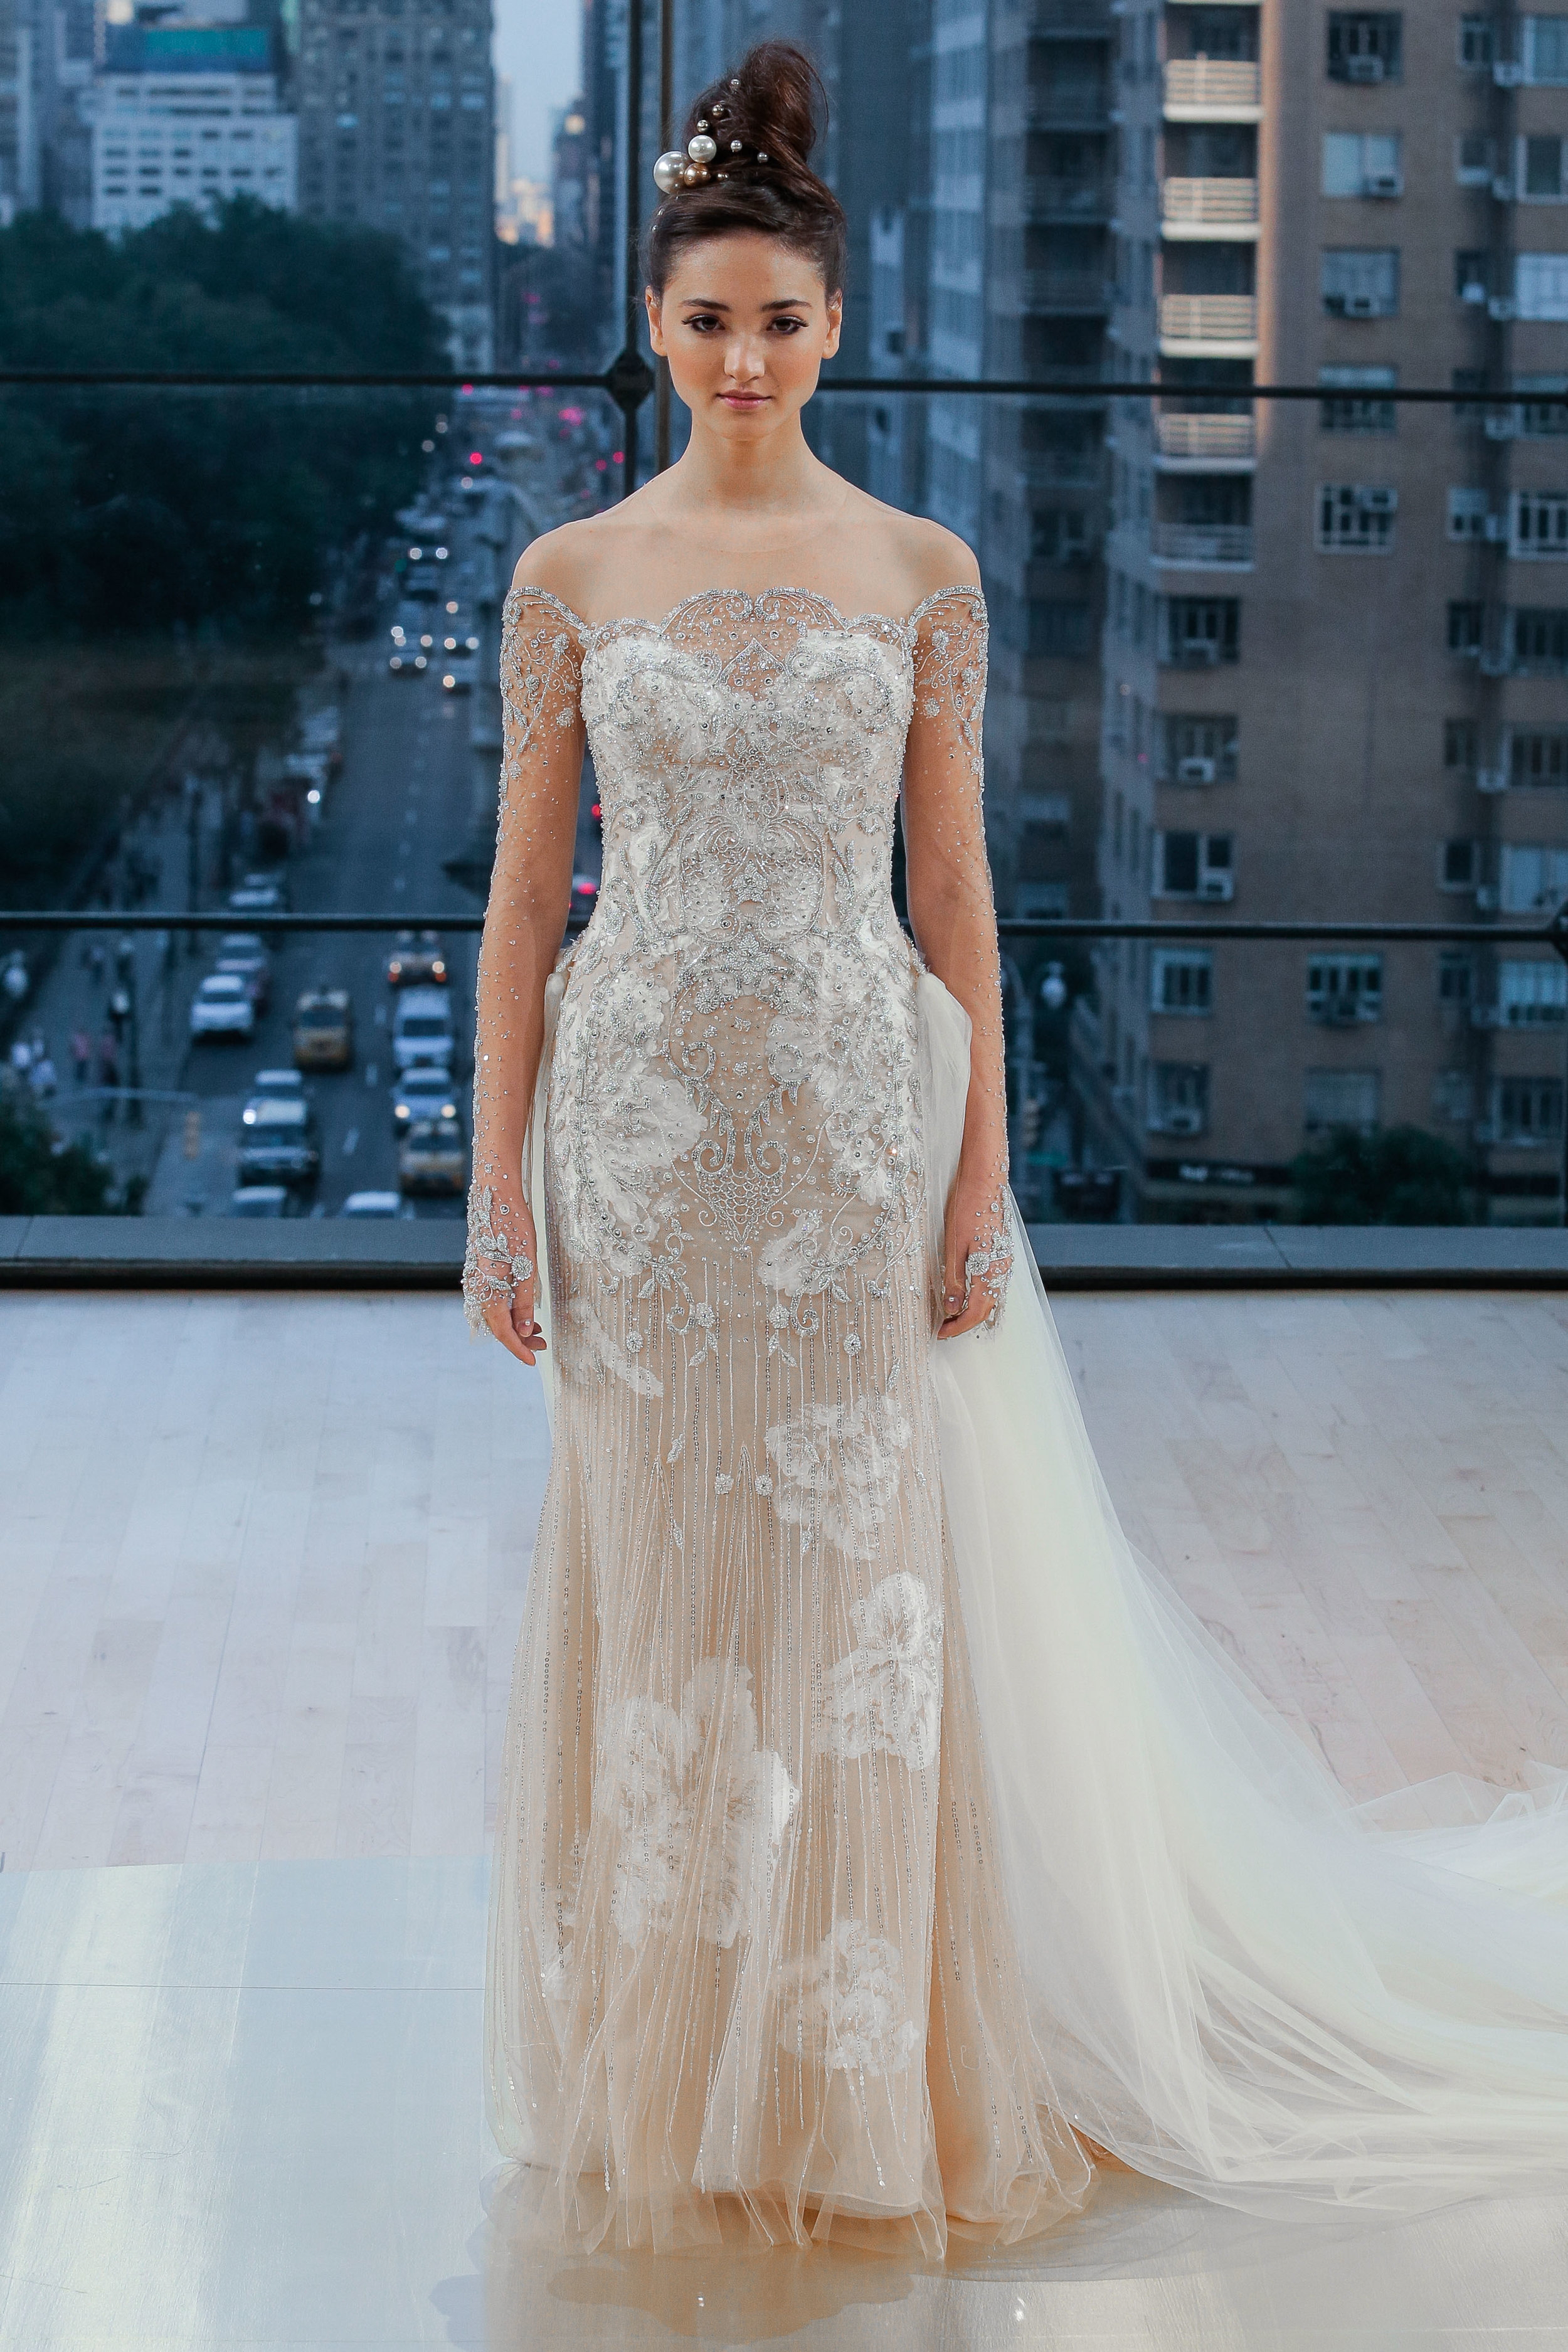 Bridal Fall 2018 Couture   SPRING    INQUIRE